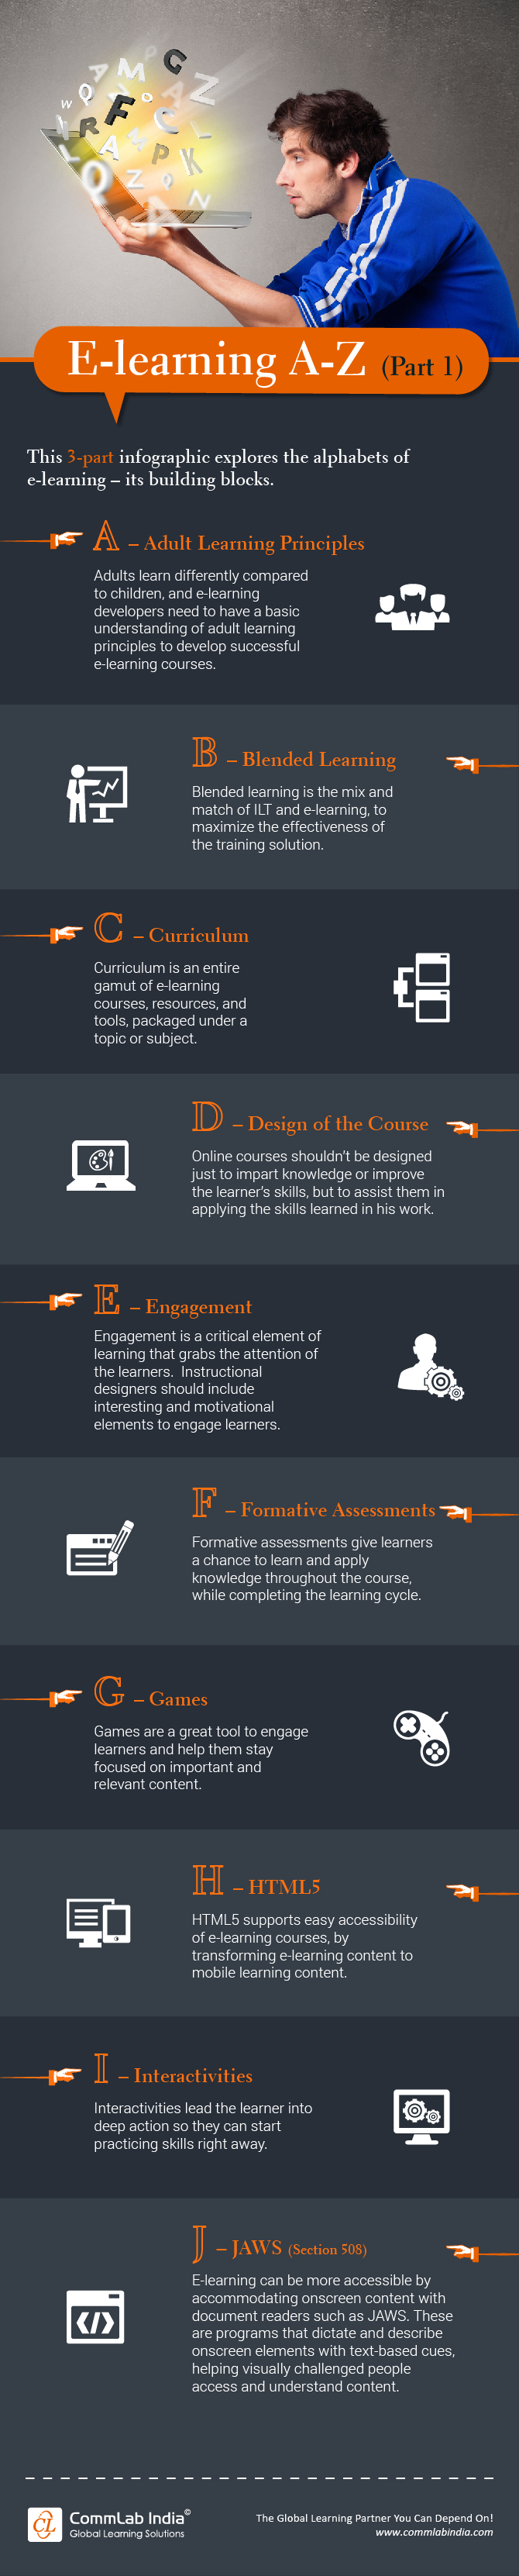 E-learning A-Z Terms: Part 1 [Infographic]